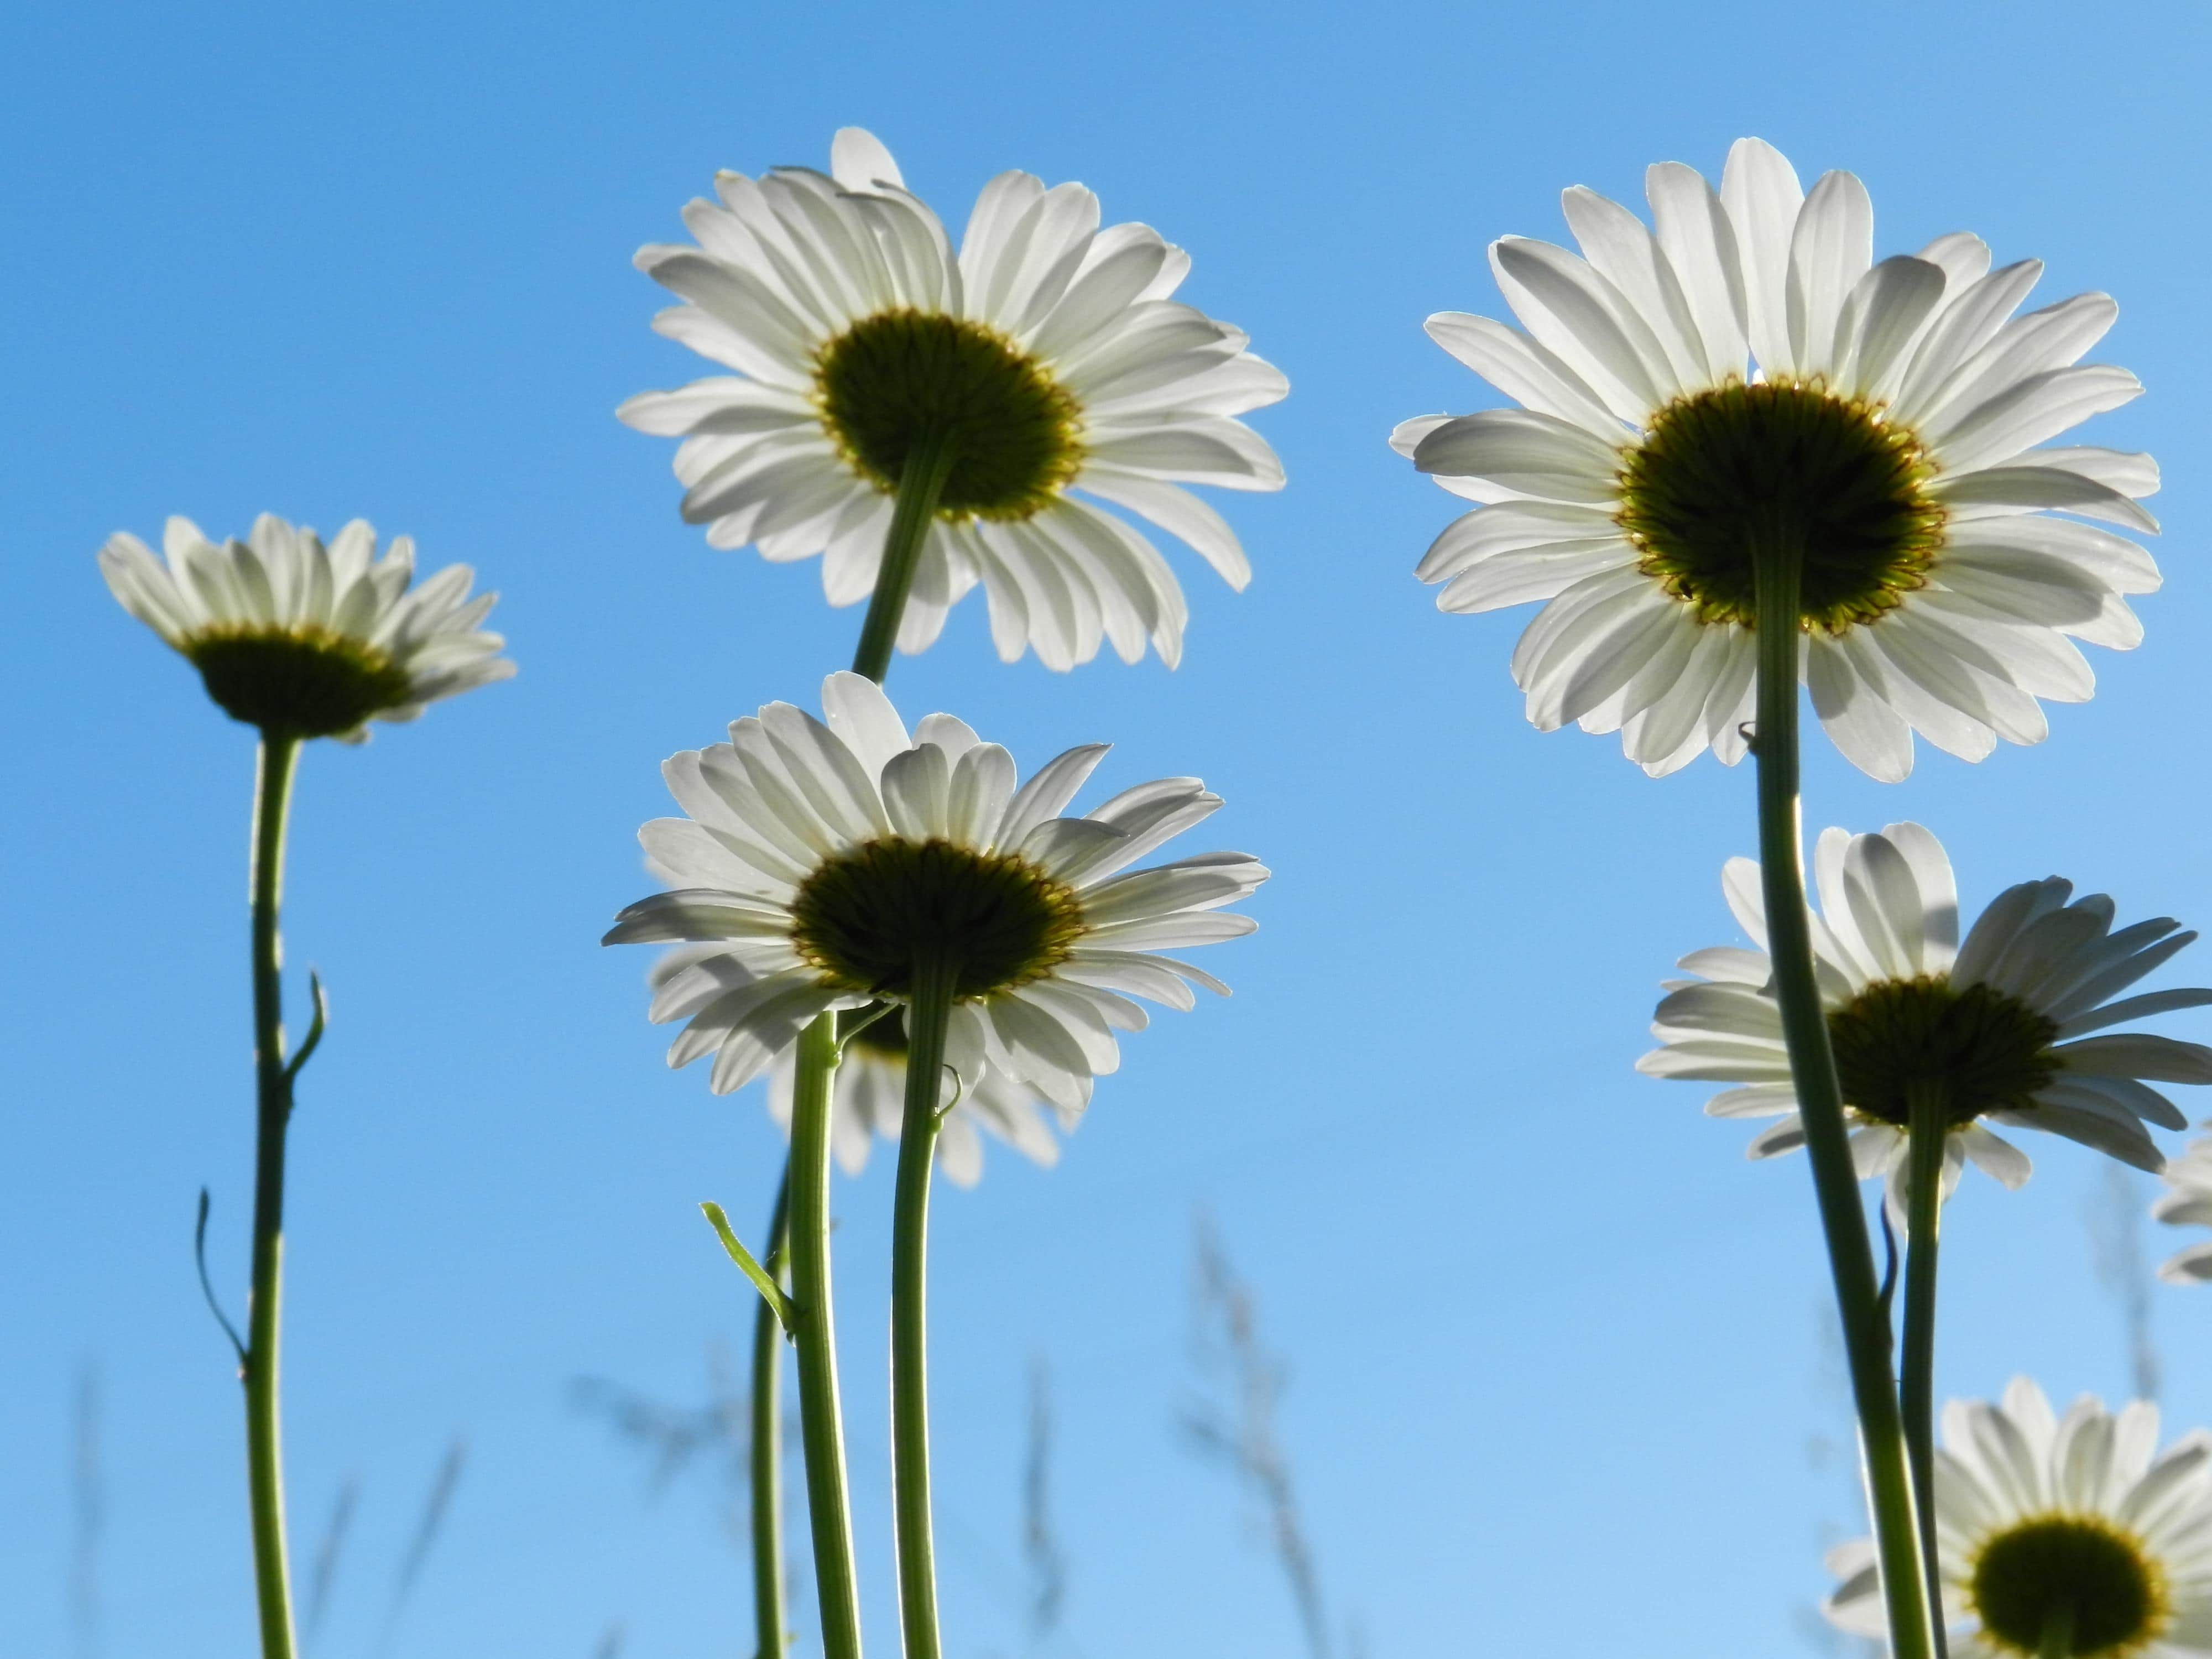 White daisies against a bright blue sky